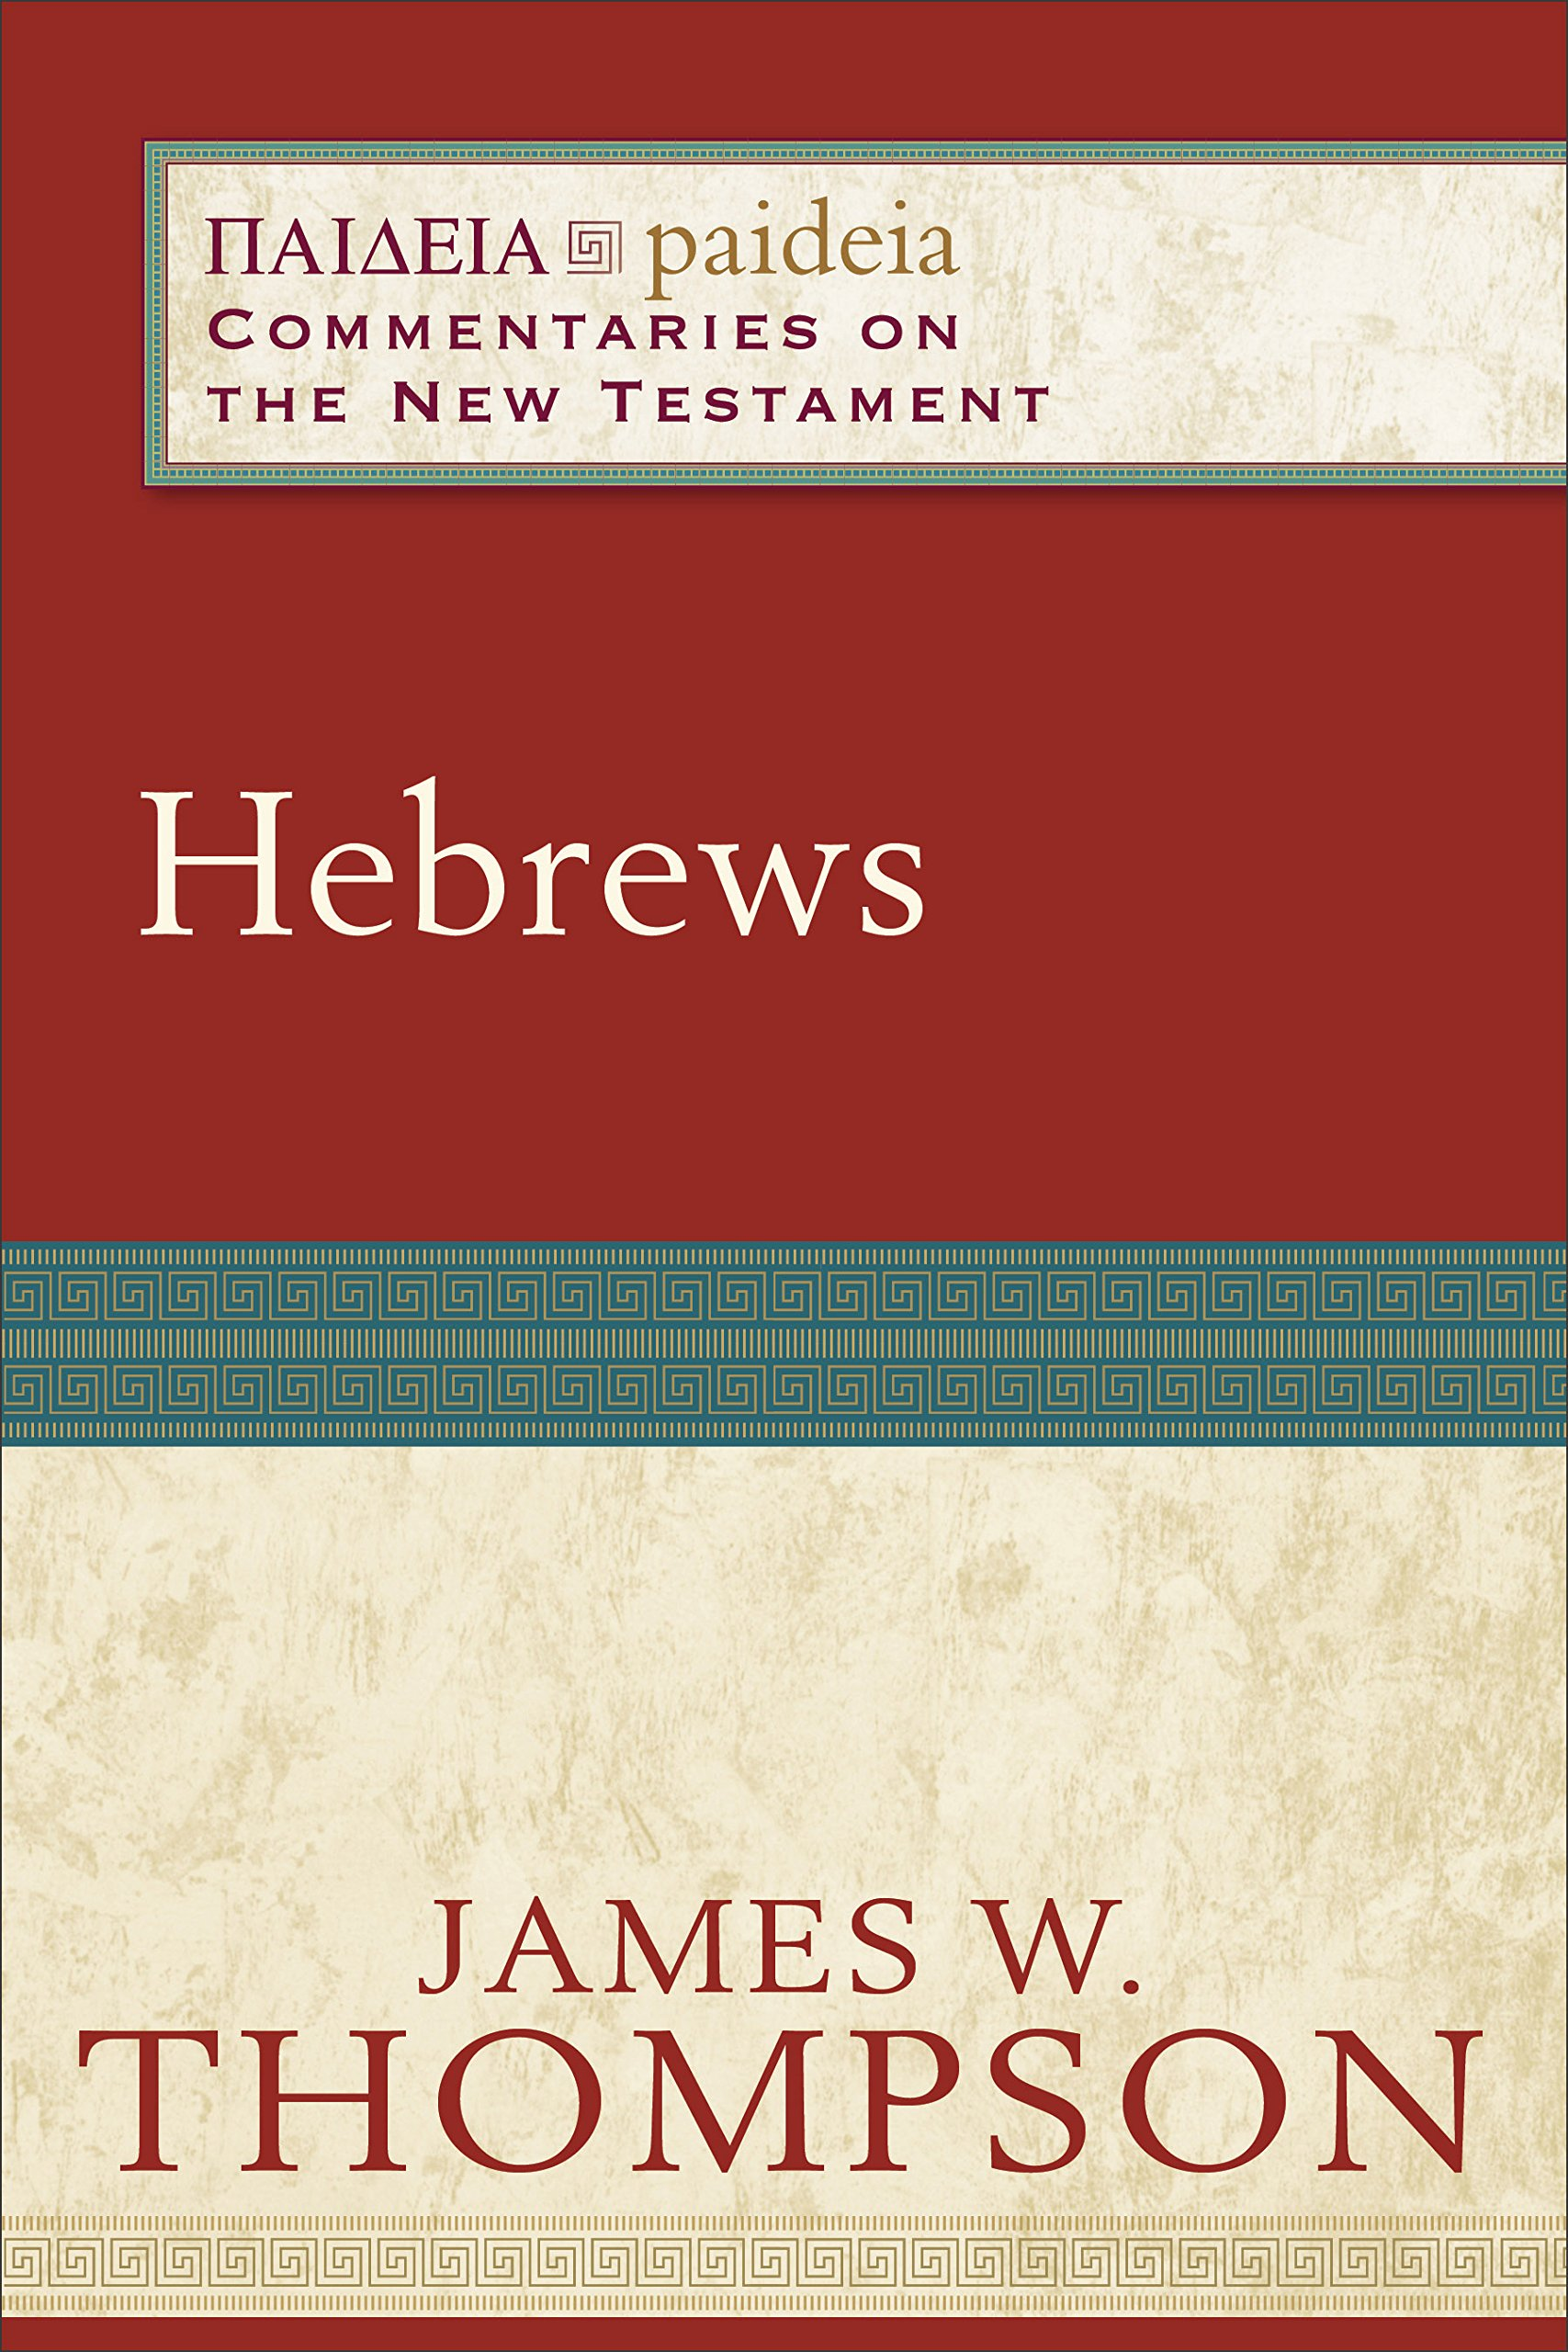 Hebrews (Paideia: Commentaries on the New Testament): James W. Thompson,  Mikeal Parsons, Charles Talbert: 9780801031915: Amazon.com: Books